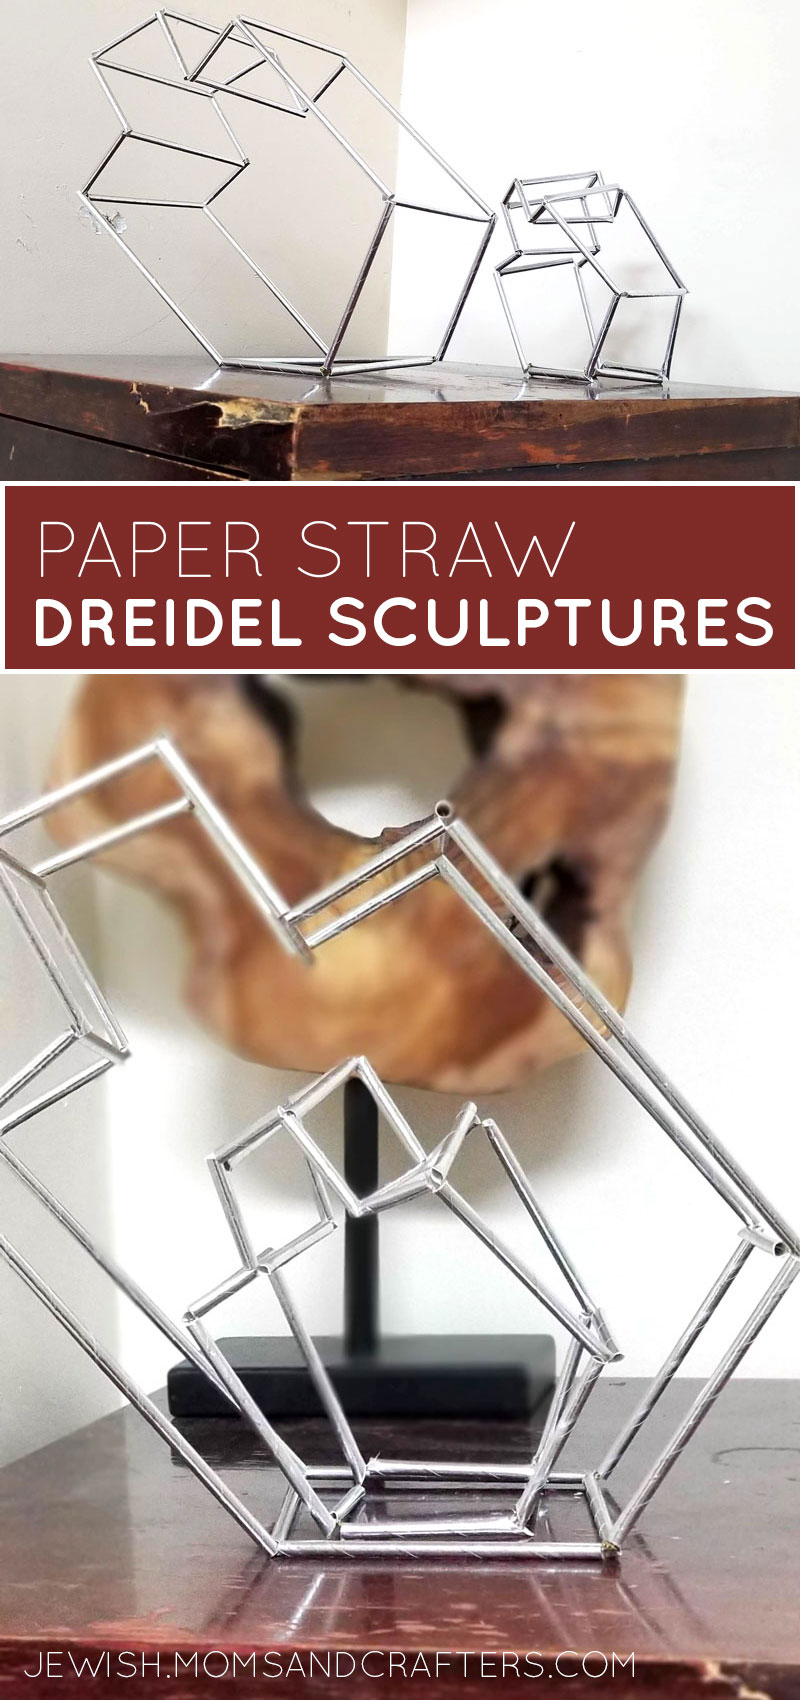 Learn how to make your own dreidel decorations using paper straws and a himmeli-inspired technique! This fun Chanukah craft for adults is a great Hanukkah party decoration for big kids or grown-ups to DIY using paper straws.